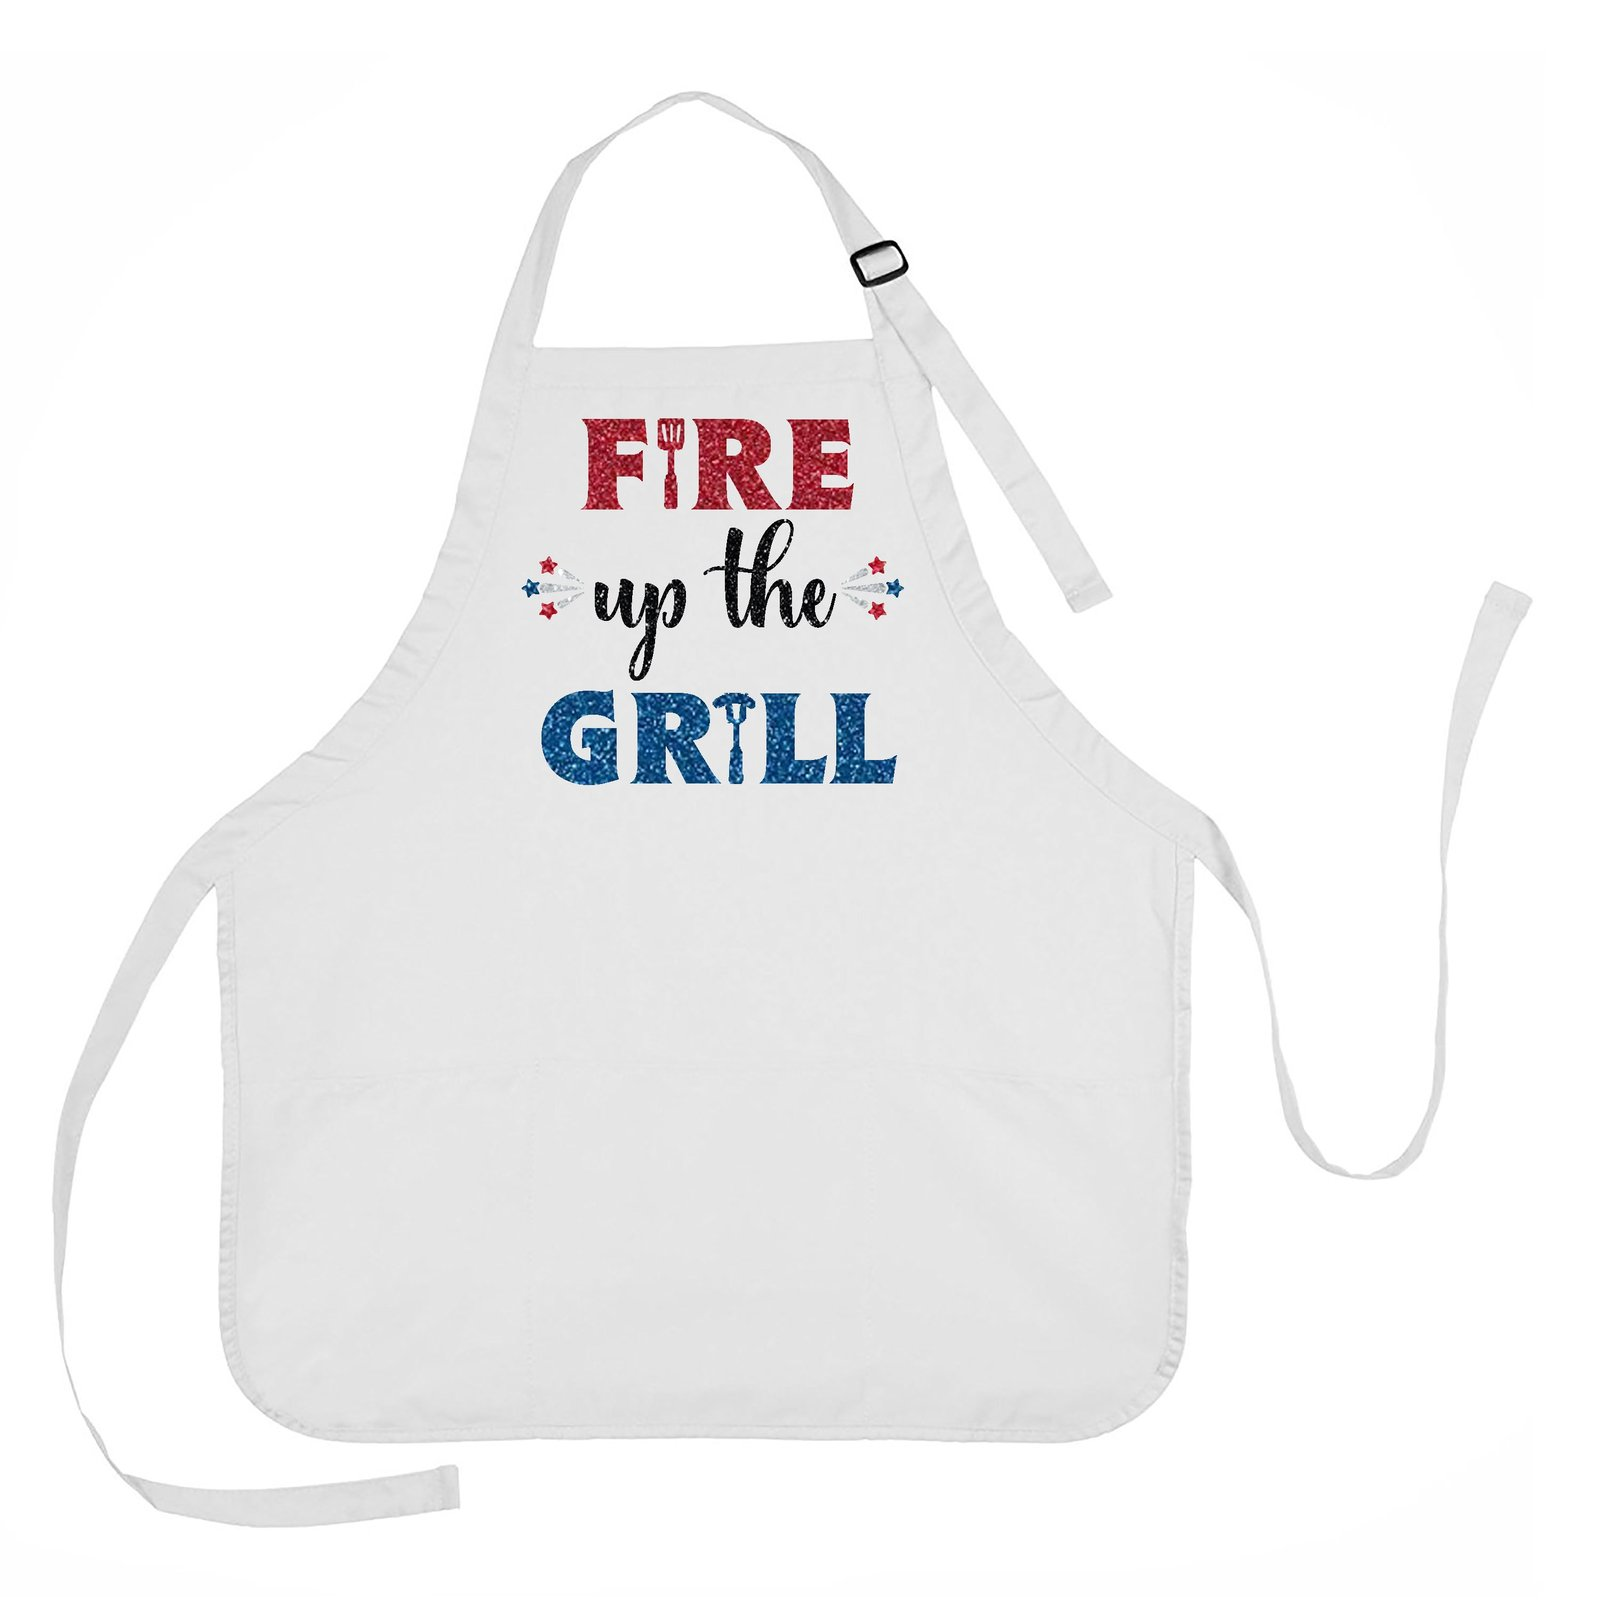 Fire Up The Grill Apron, 4th of July Apron, Summer Grilling Apron - $18.00